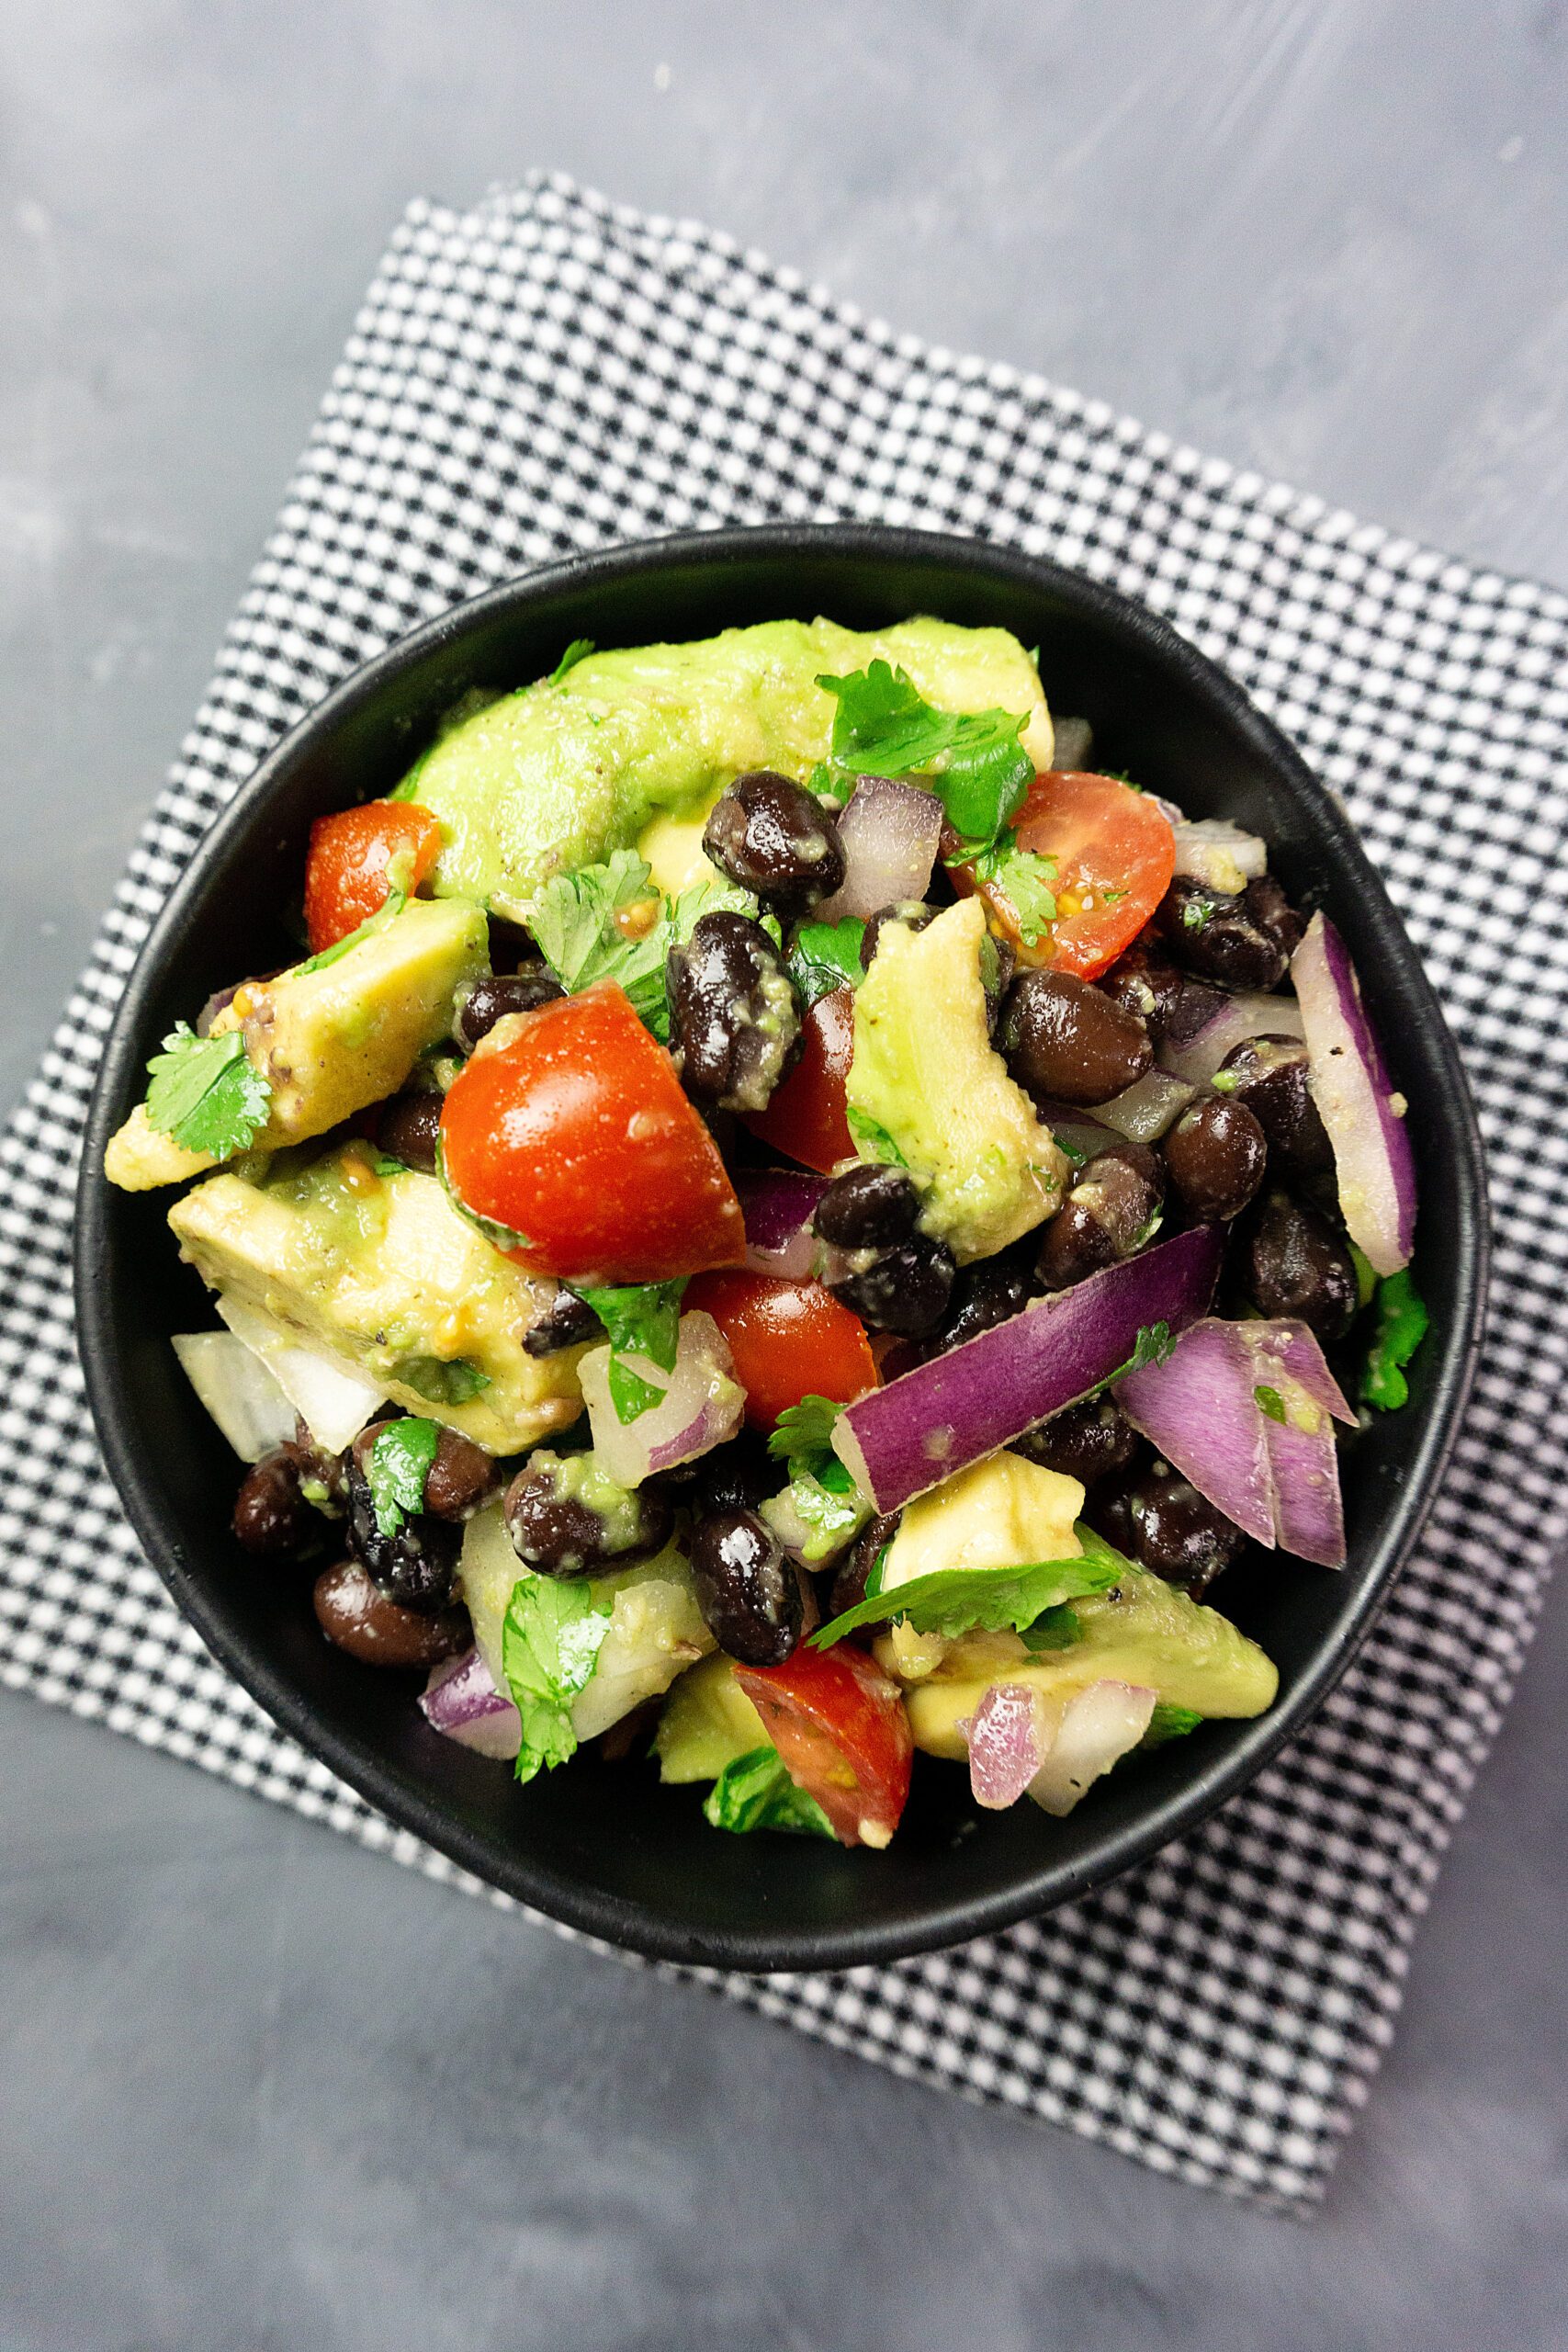 A close up view of the finished weight watchers black bean salad.